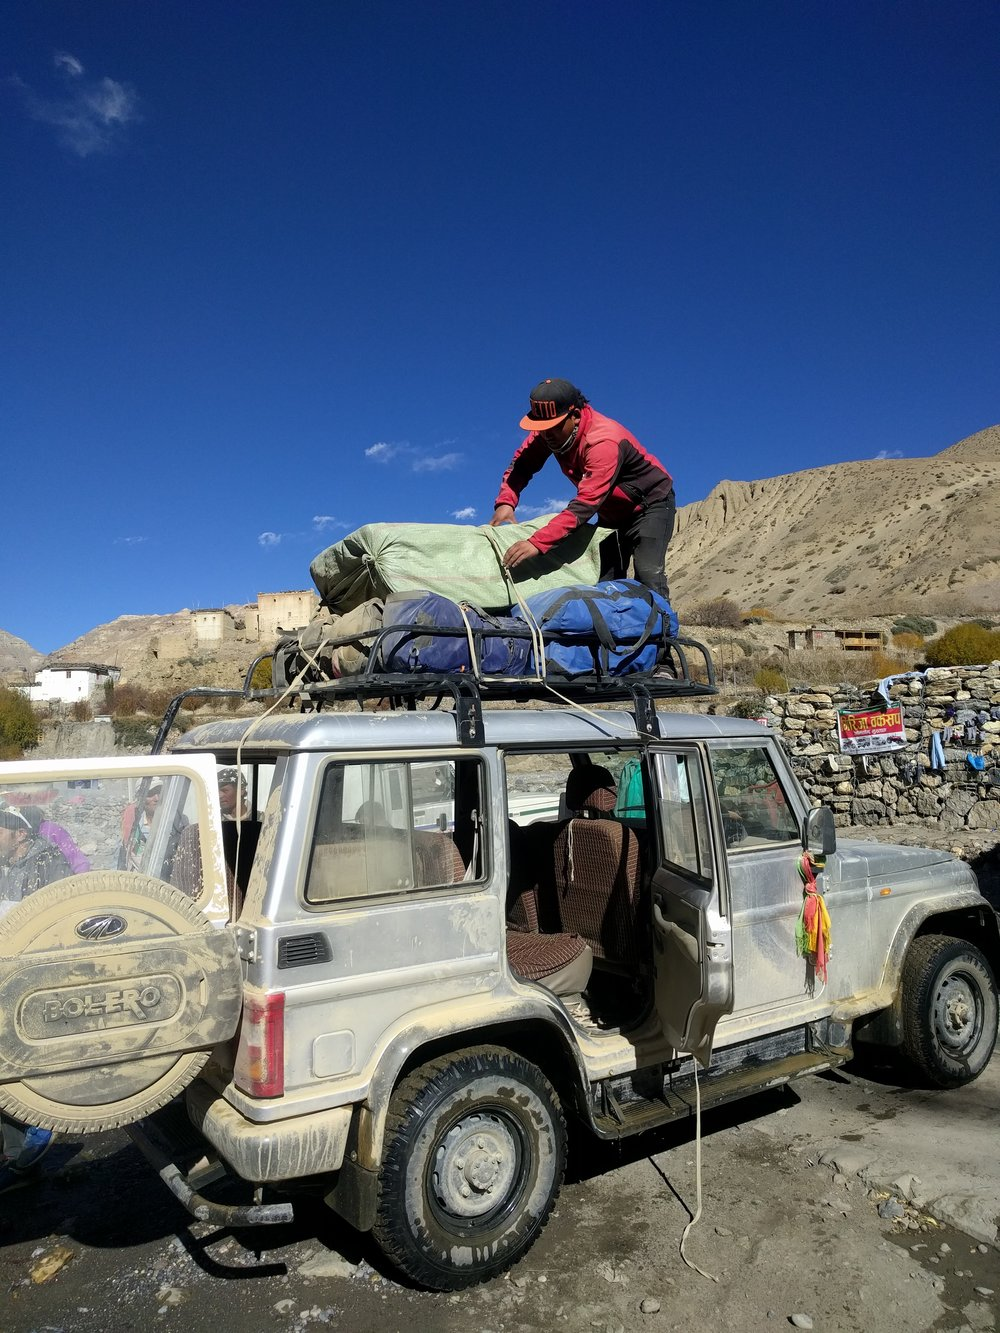 We got to Kagbeni, had our passes stamped and paid a little extra to ride down to Jomsom.